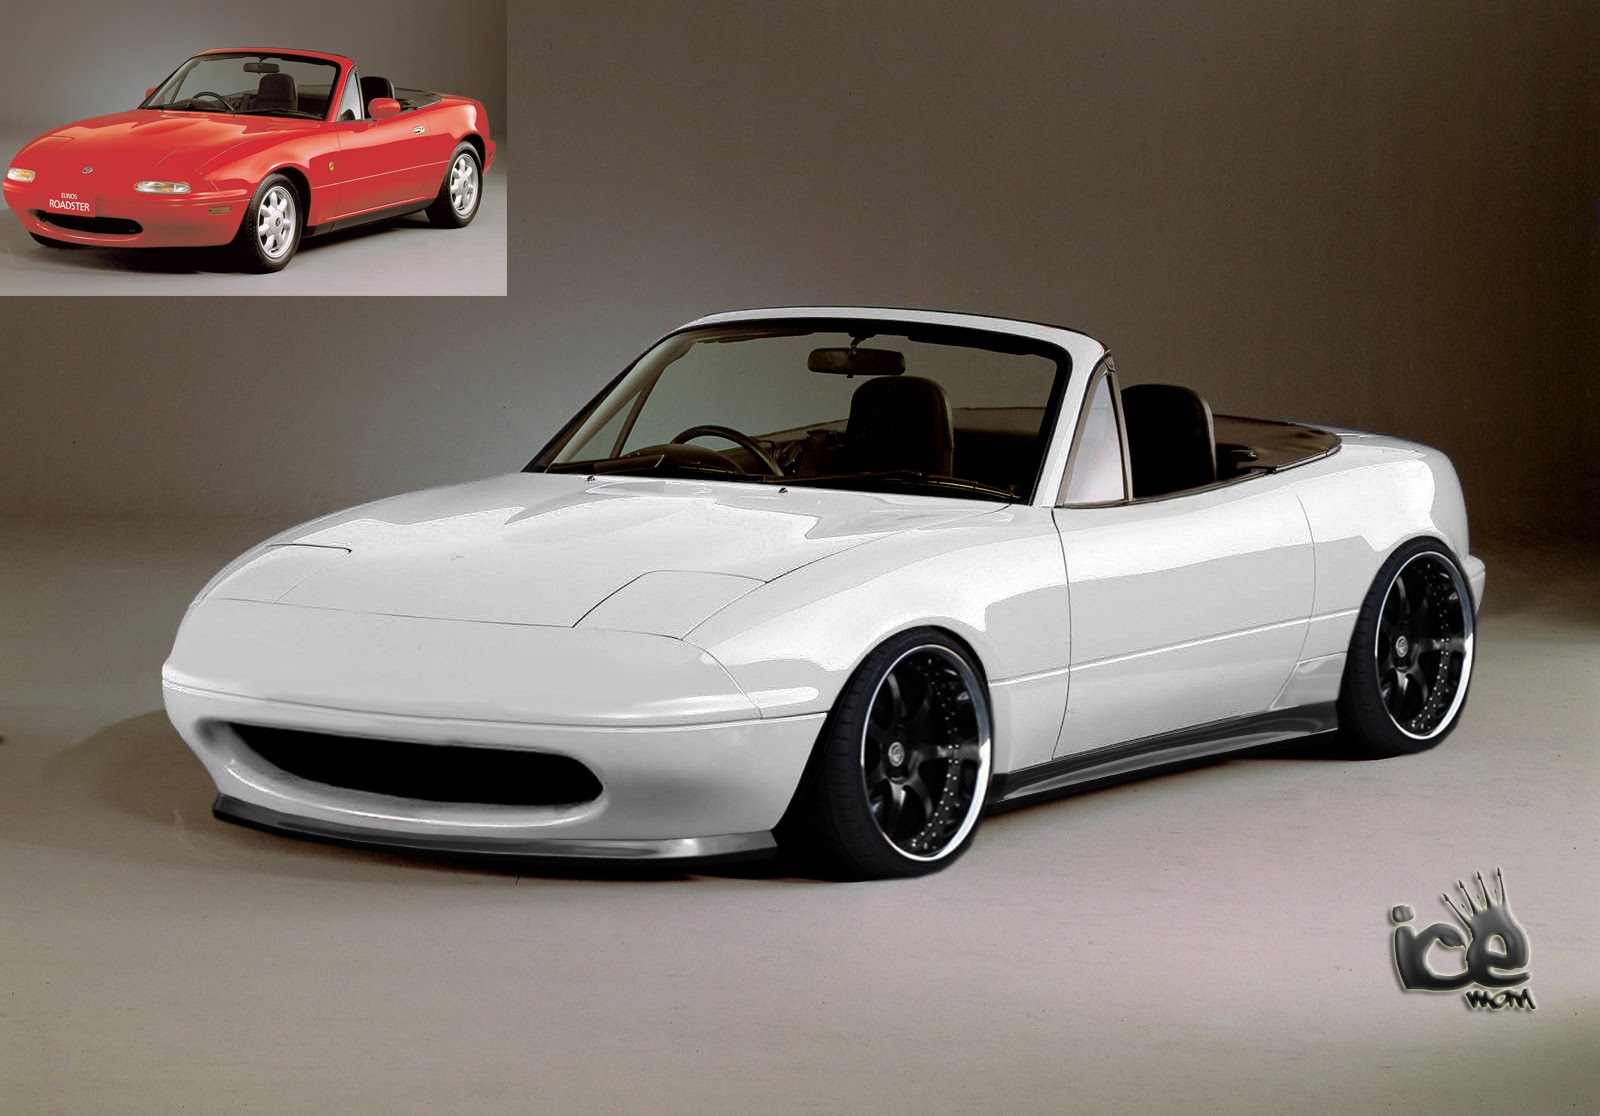 New Car Wallpaper Bloggers Mazda Miata Mx 5 By Iceman Icemangraphics